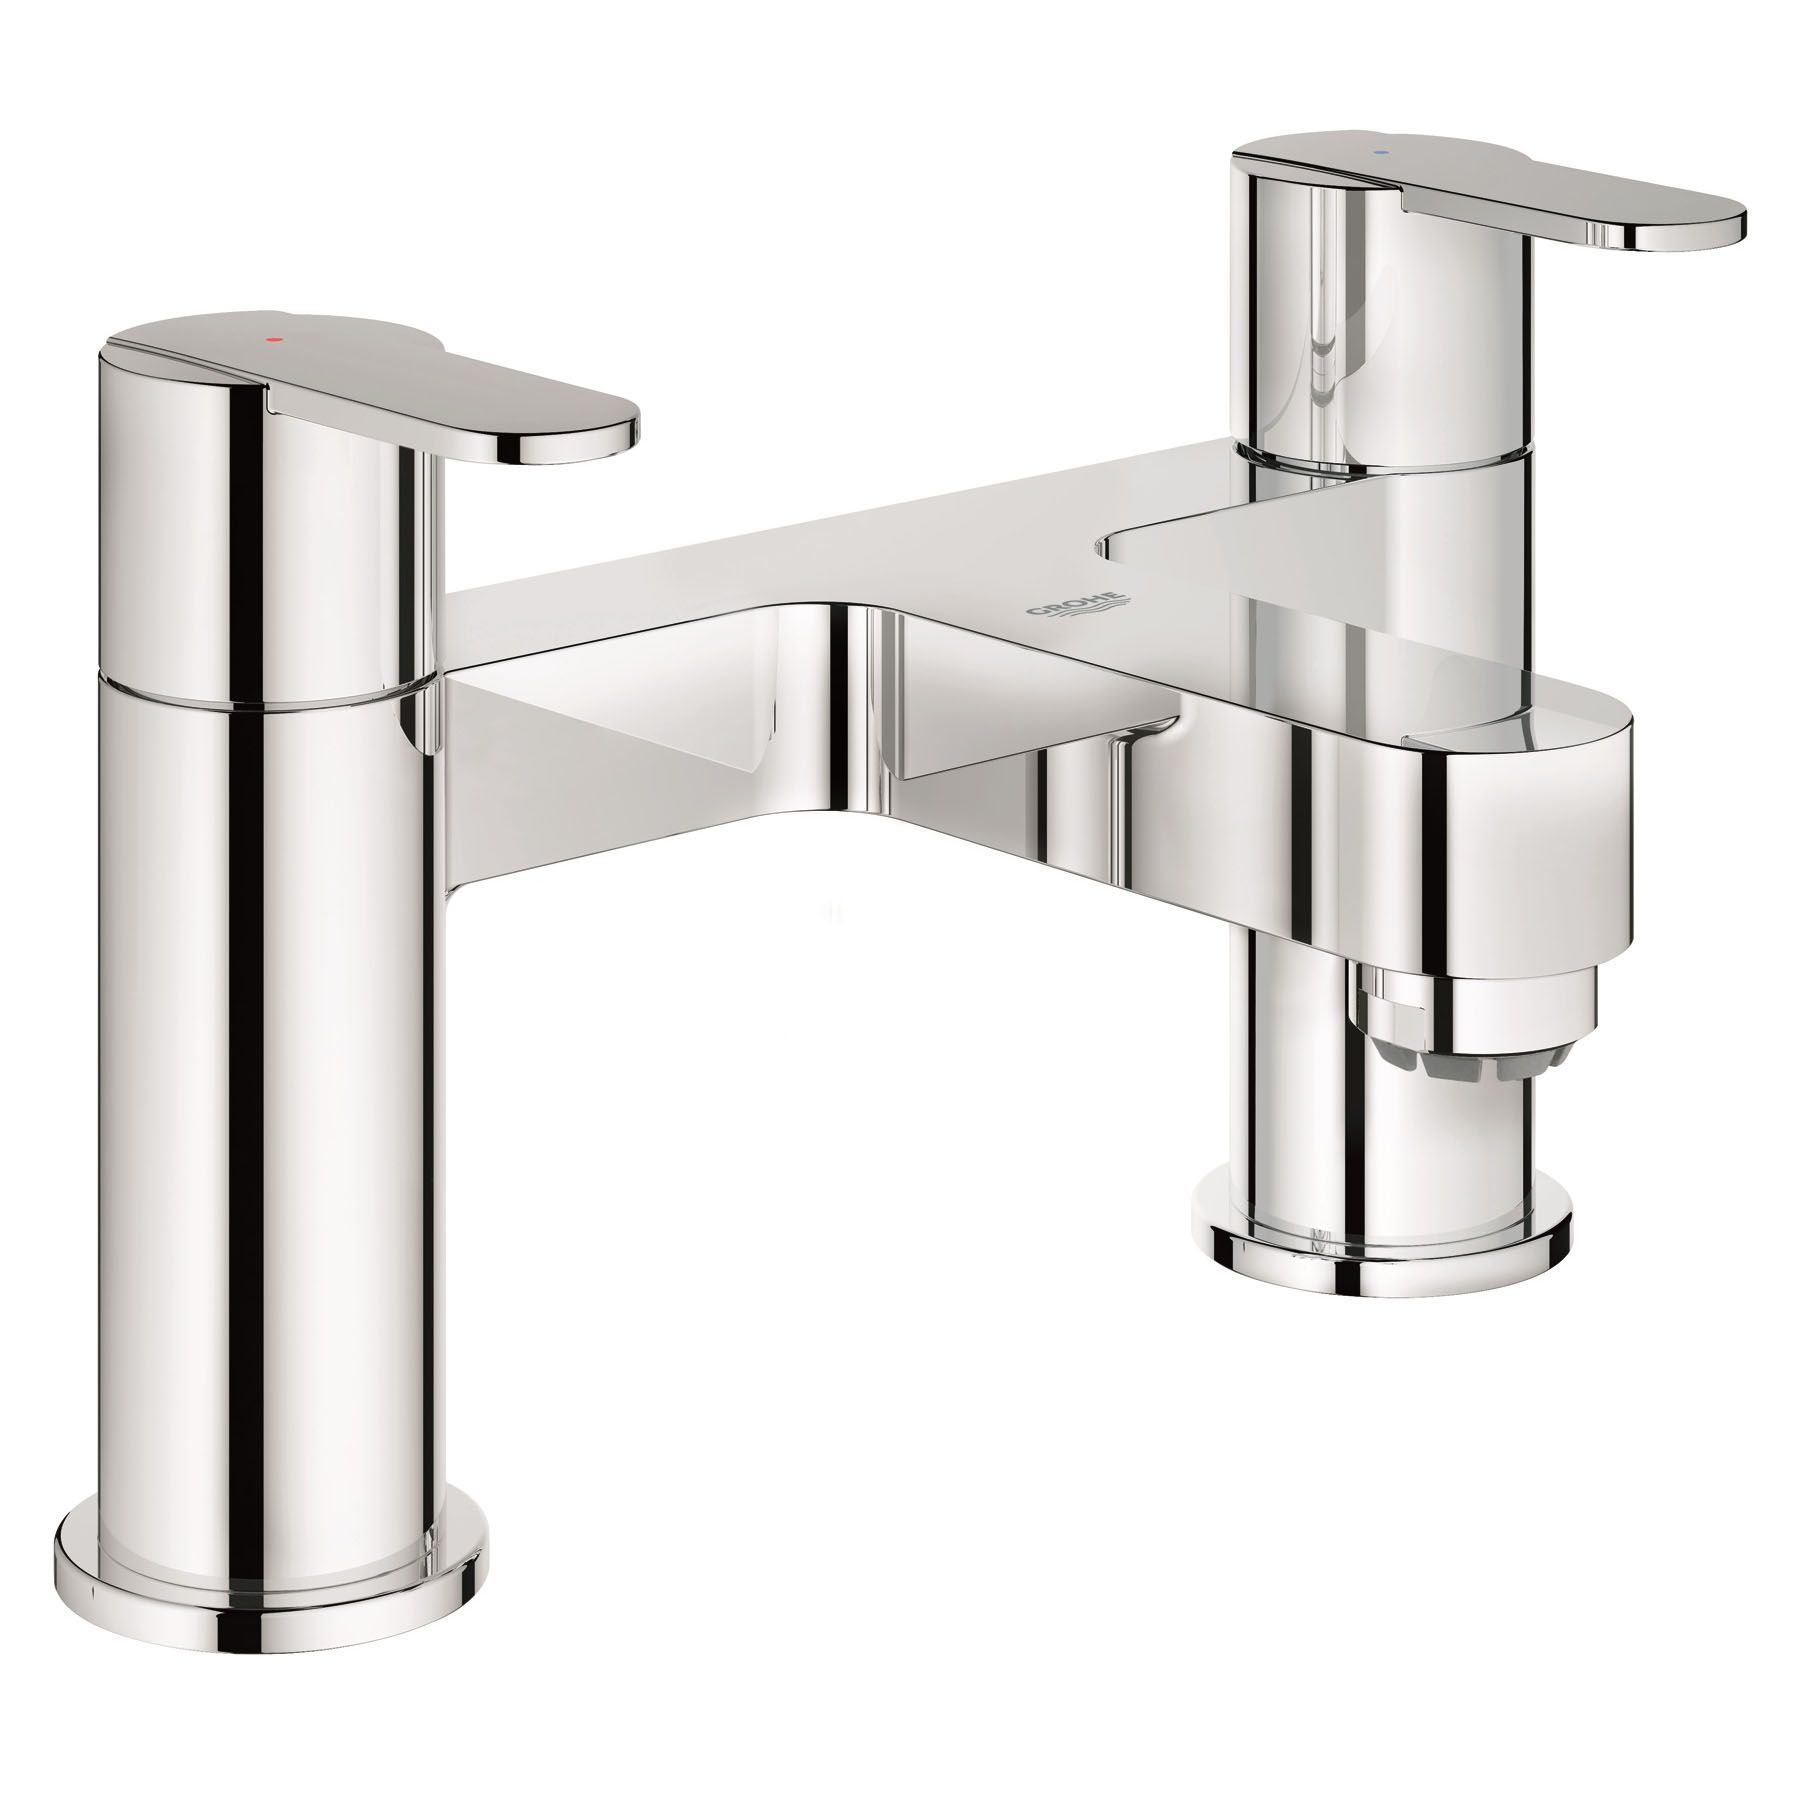 Grohe Get Chrome finish Bath filler tap | Departments | DIY at B&Q